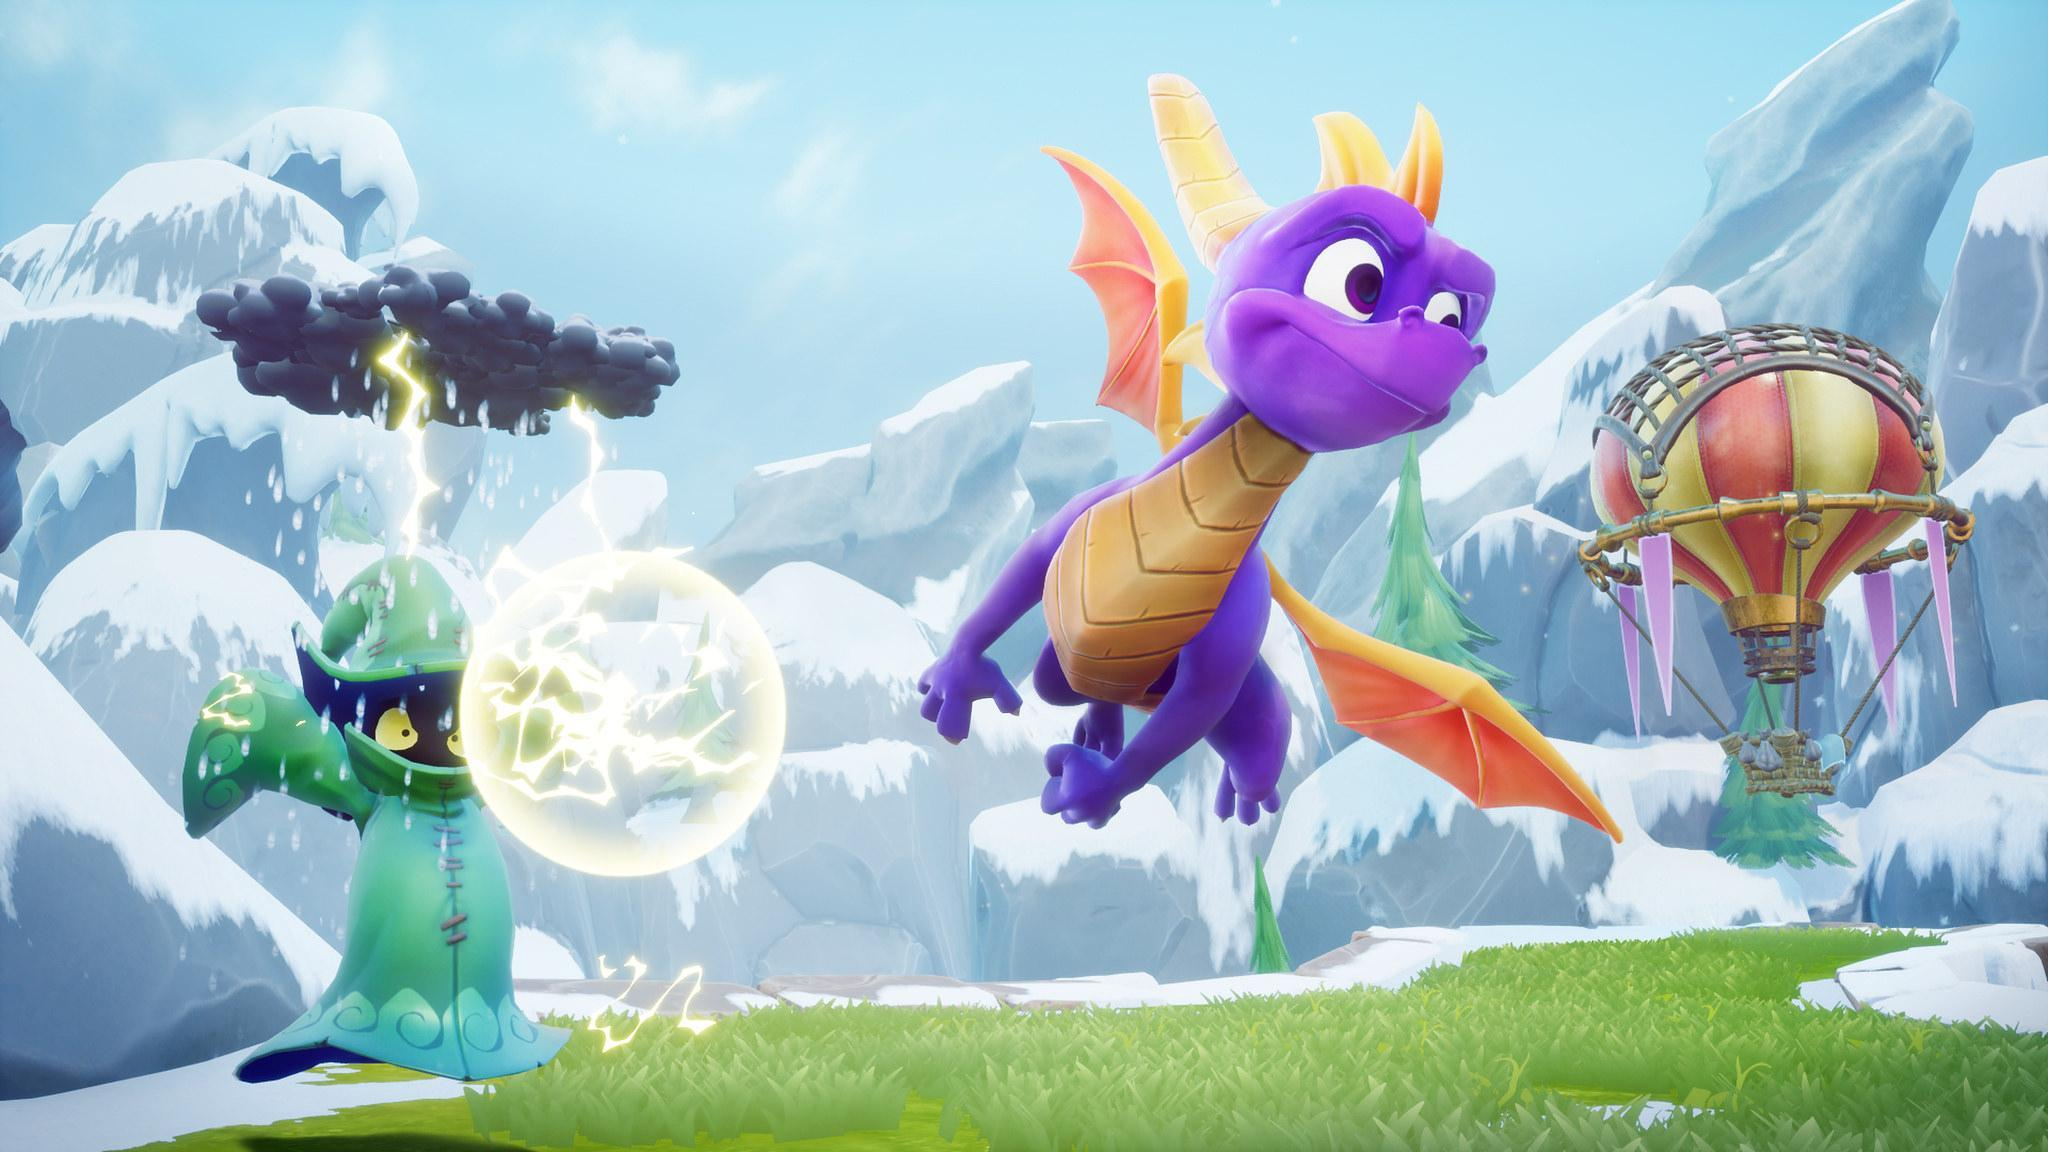 First Spyro: Reignited Trilogy gameplay revealed at #E32018, and it looks ������ https://t.co/s6attZyMfr https://t.co/PfEMtY49Pk